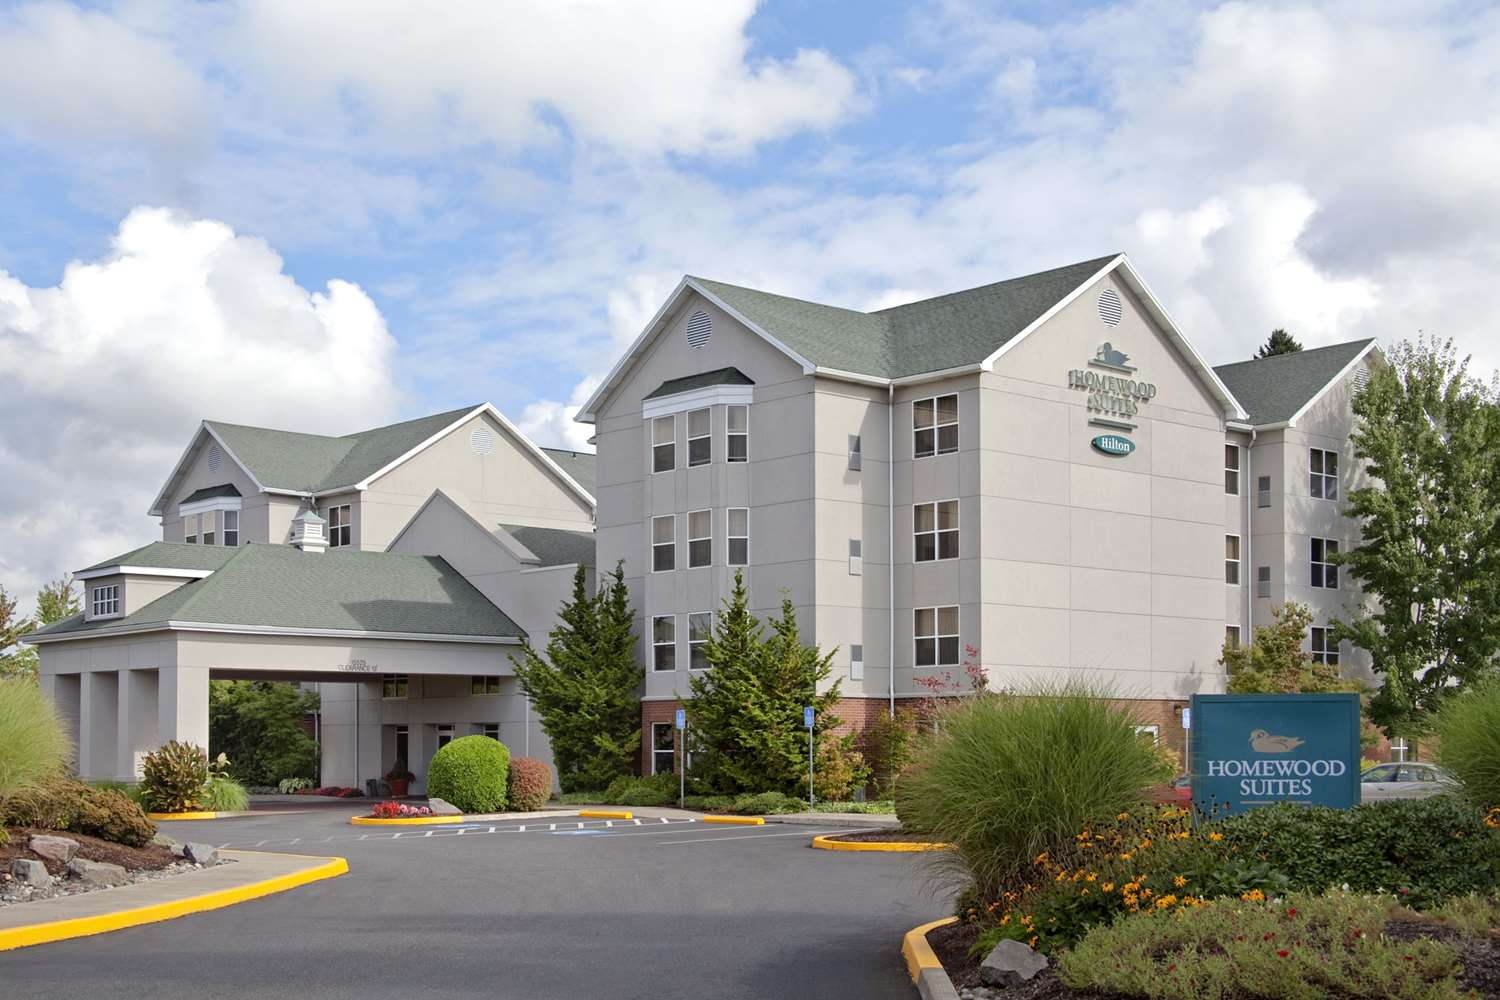 Homewood Suites by Hilton Beaverton